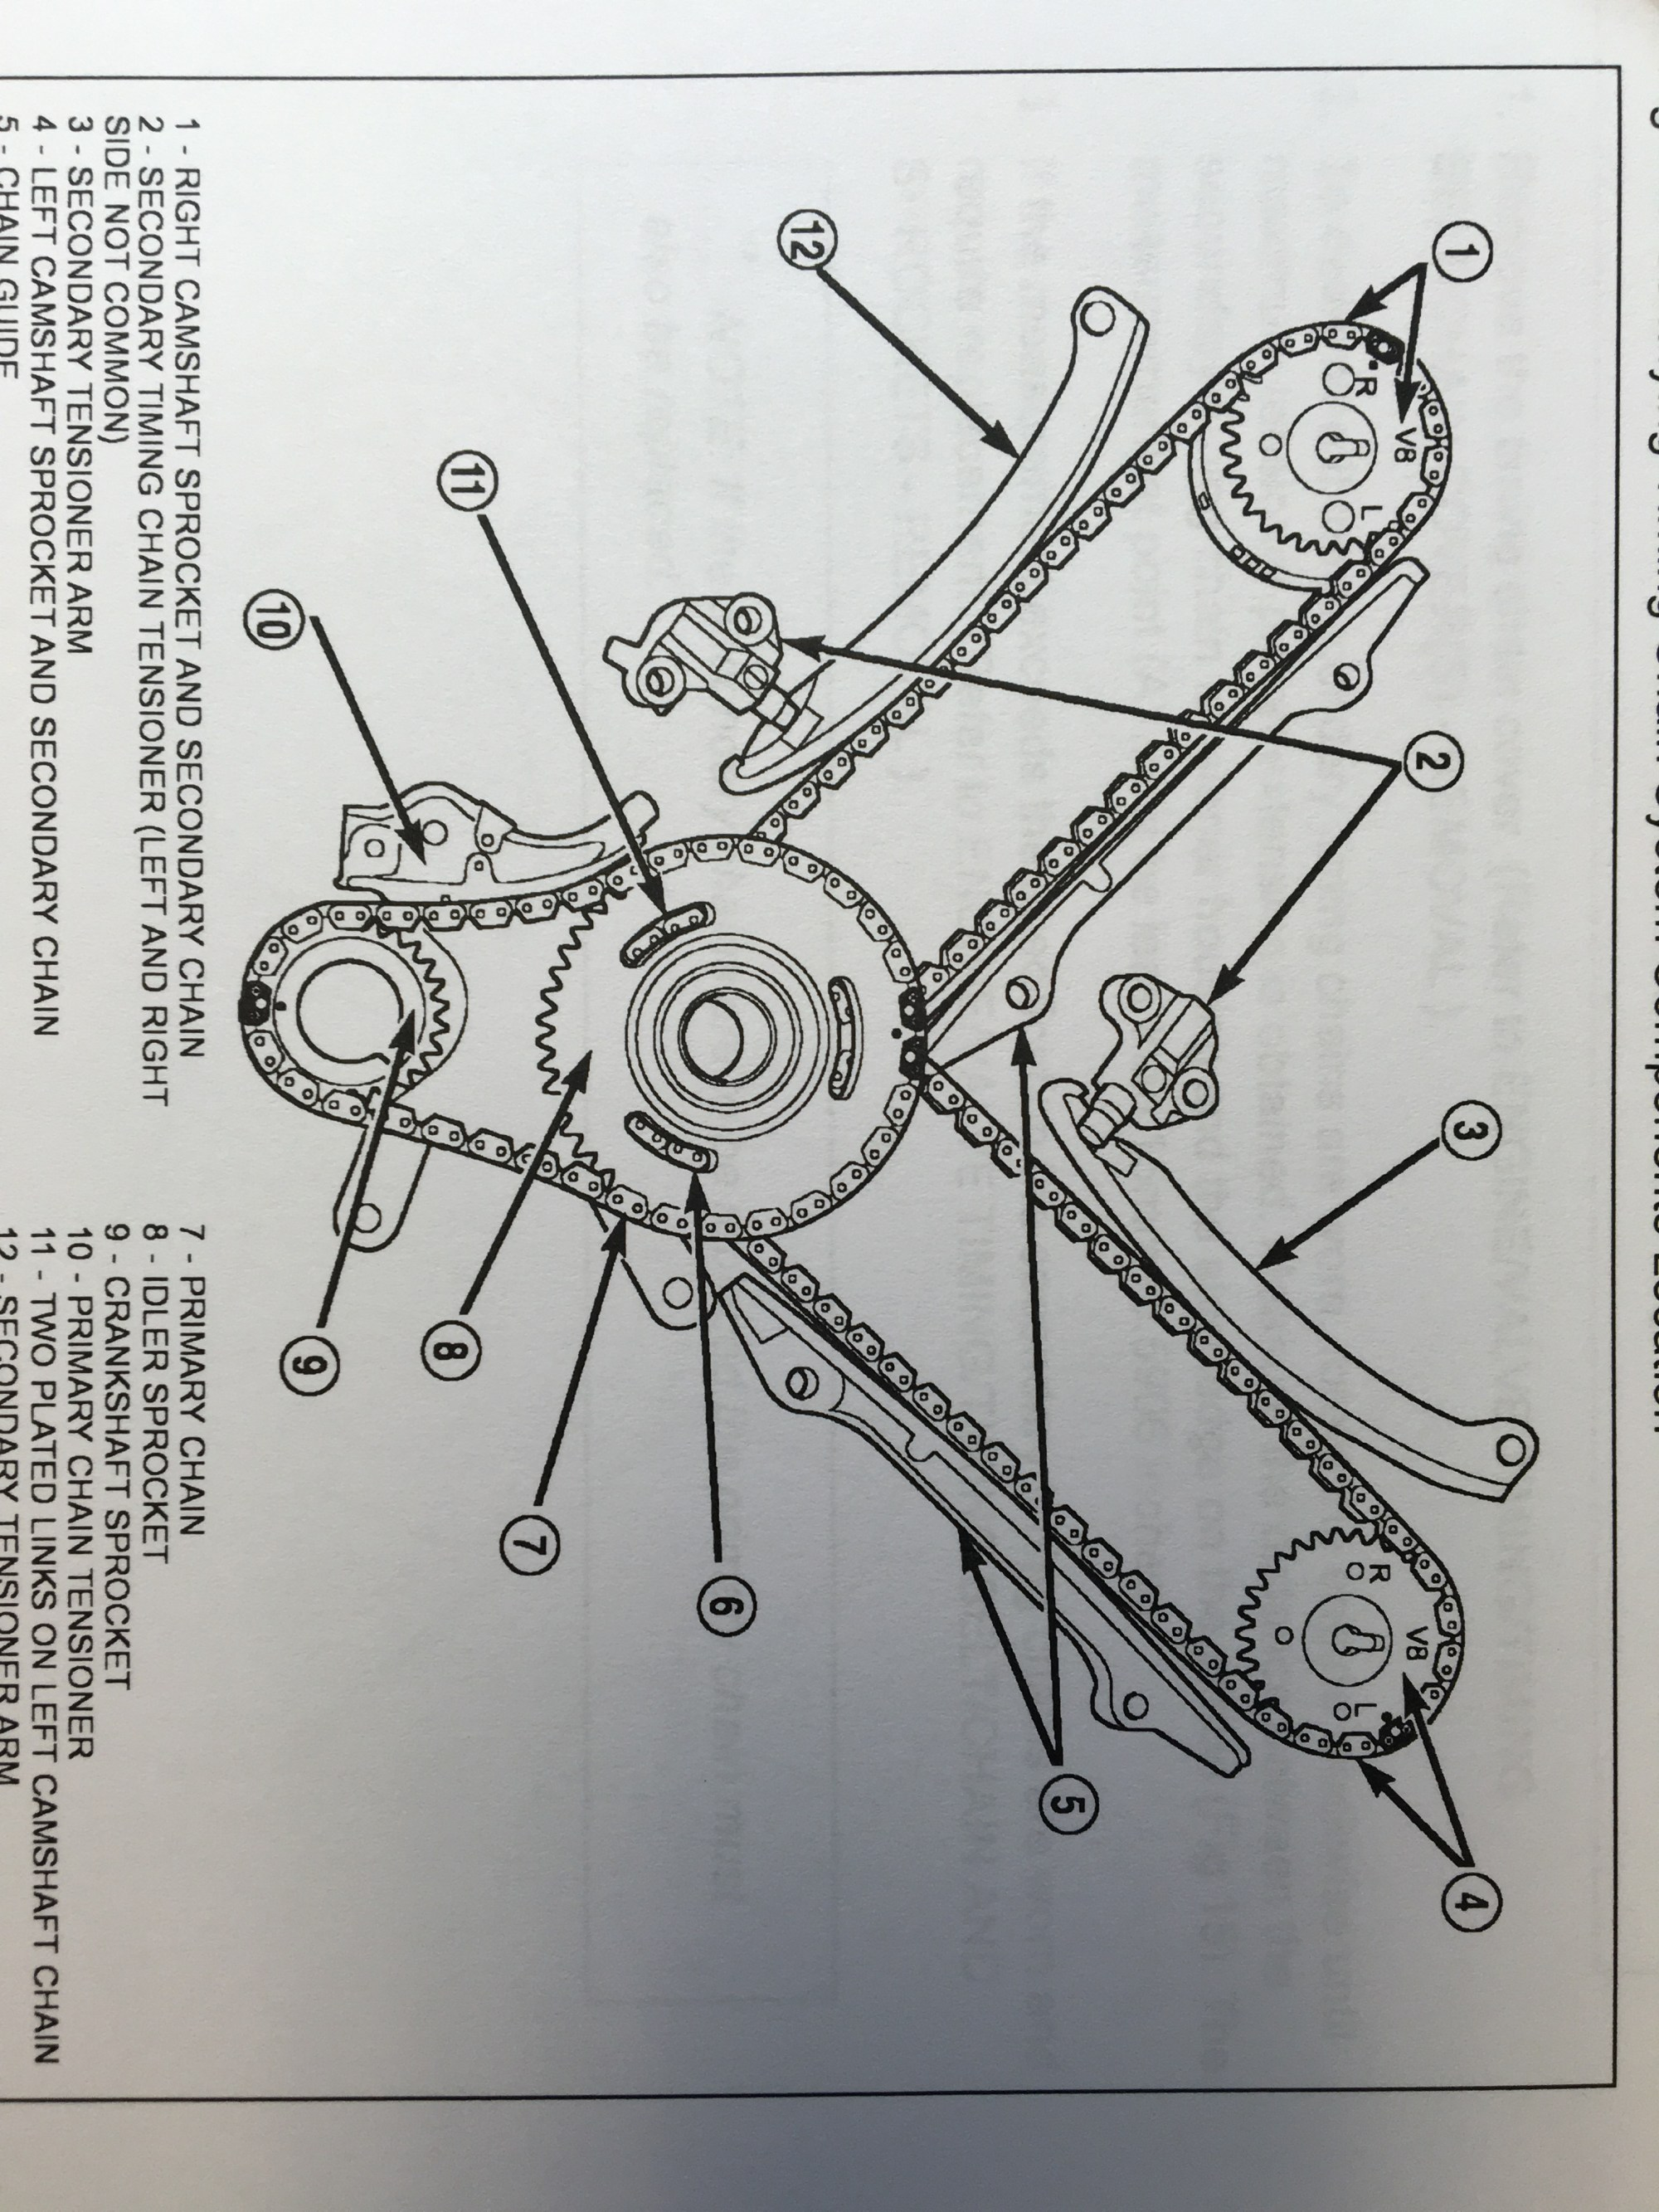 hight resolution of  and then slide the idler sprocket assembly and crank sprocket forward simultaneously to remove the primary and secondary chains